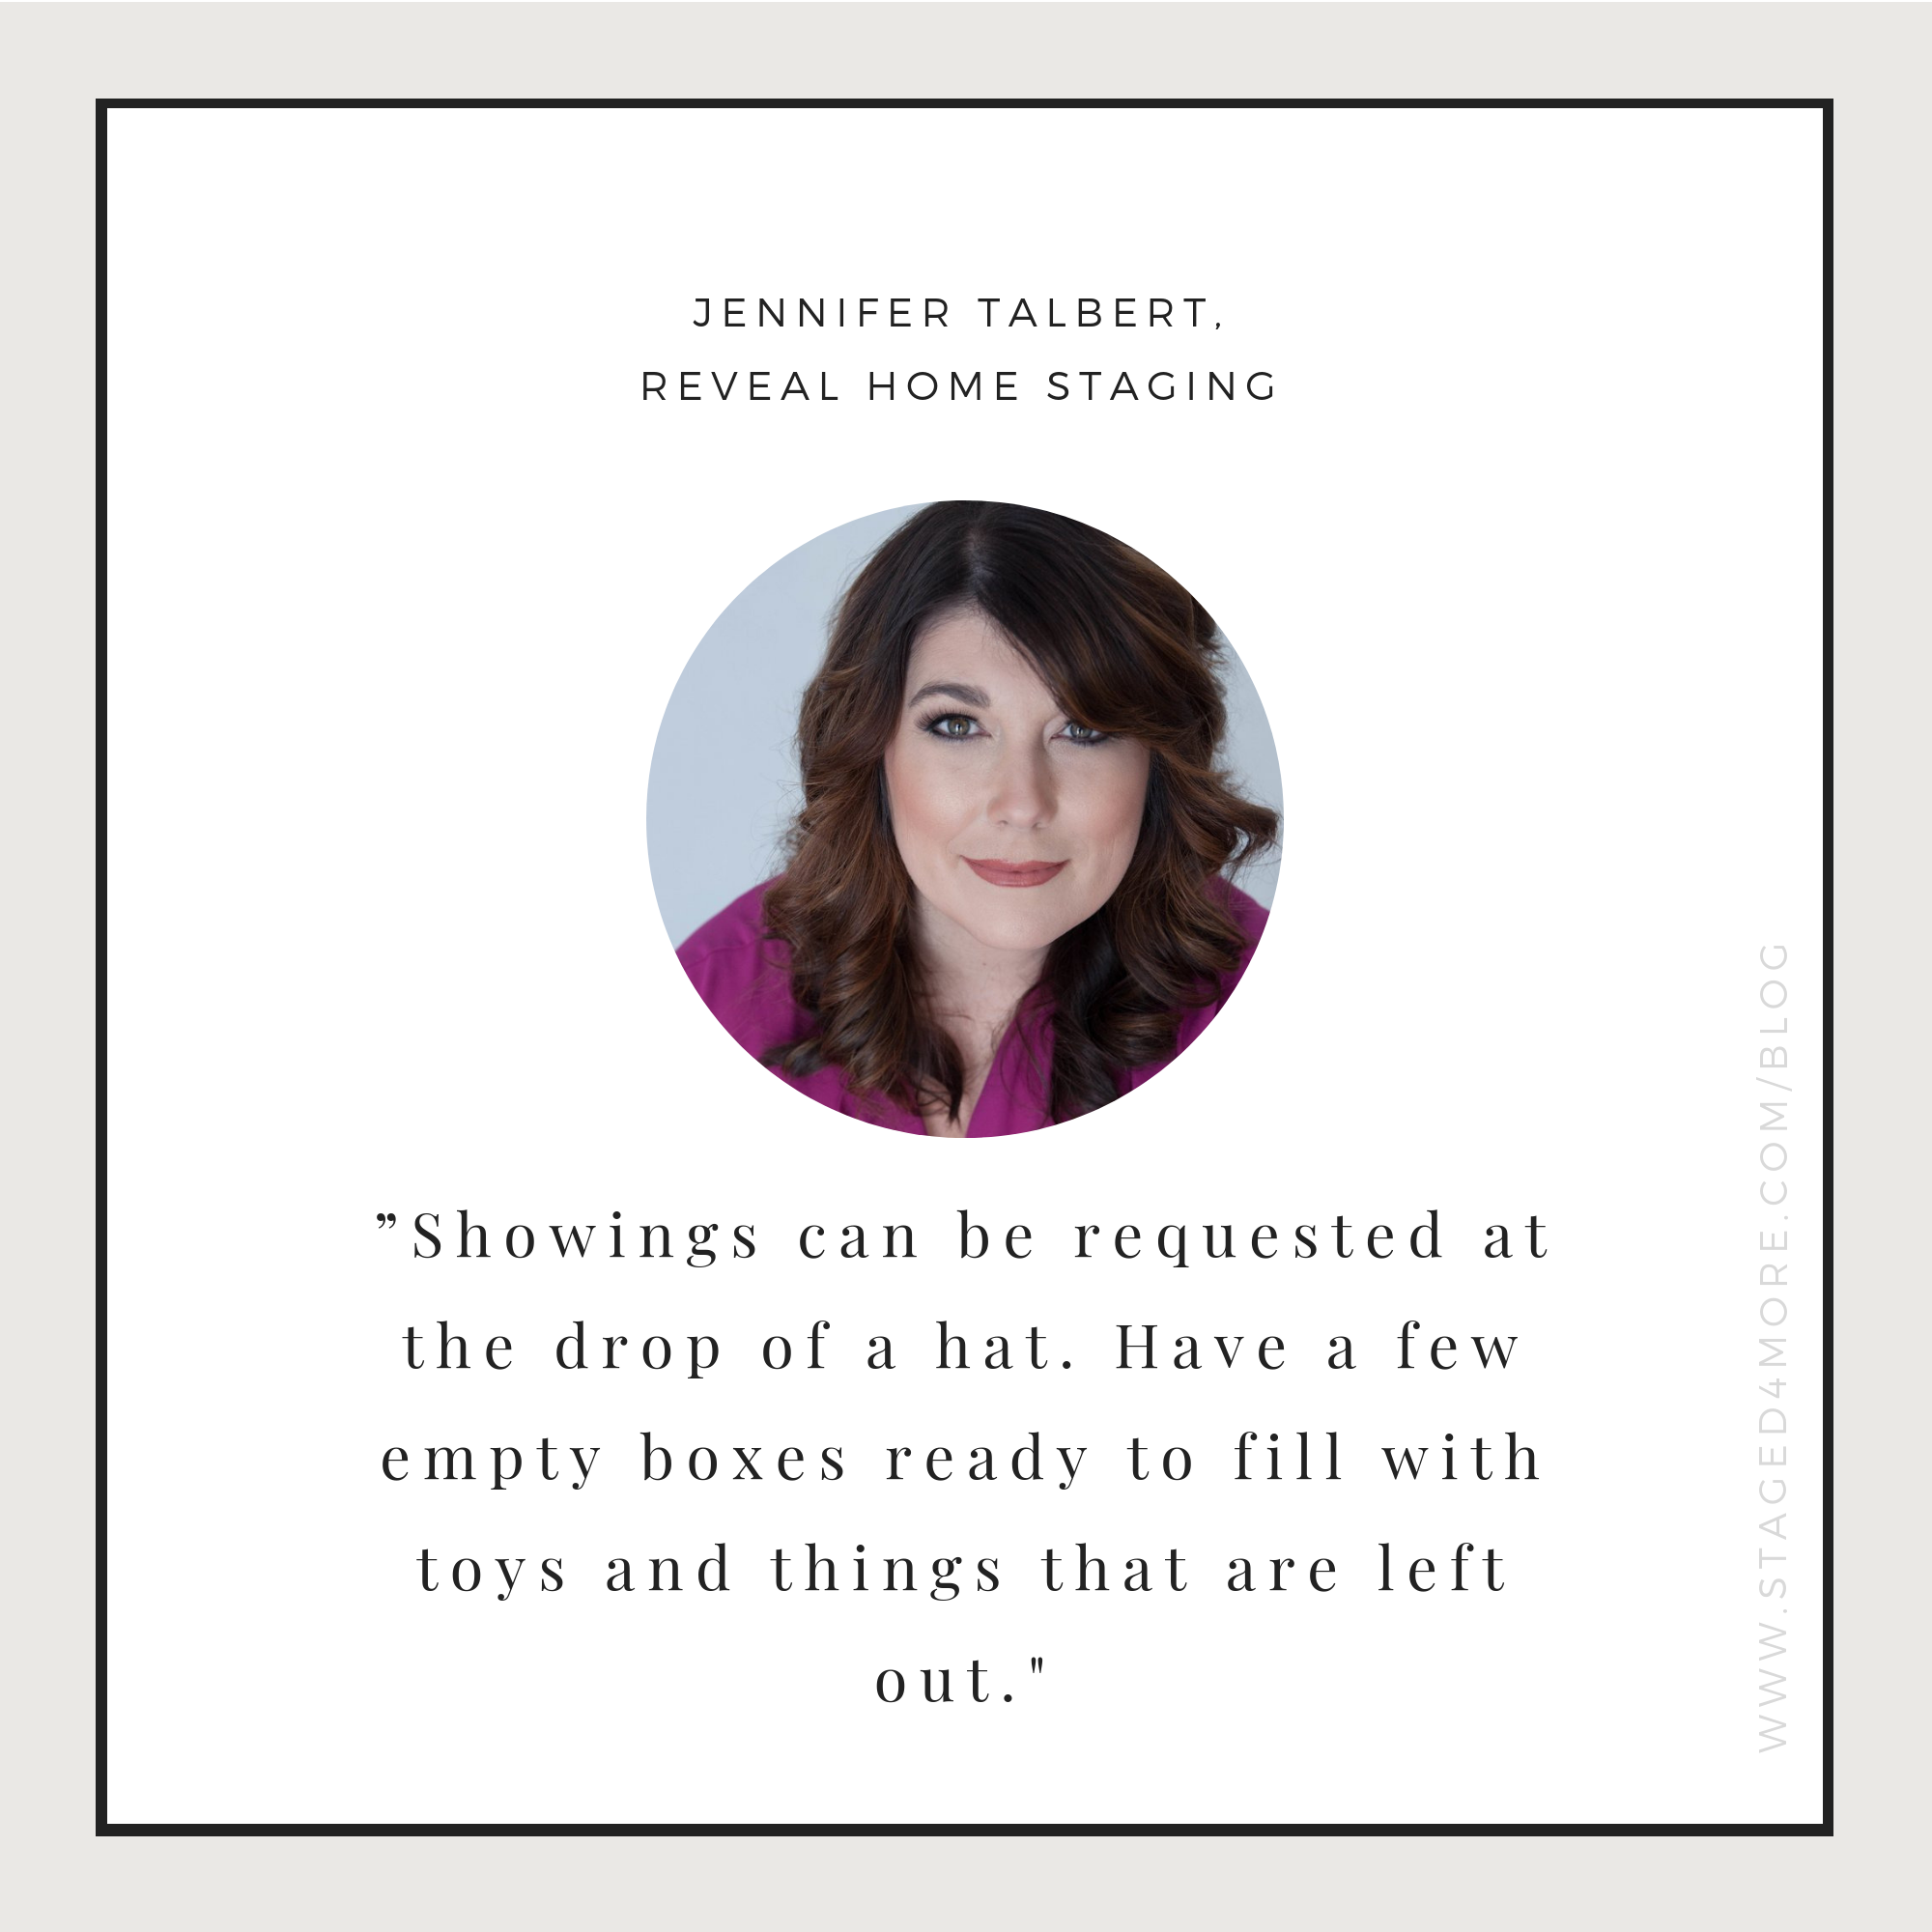 How to live in a staged home. Expert tips from Jennifer Talbert of Reveal Home Staging. Home staging blog by Staged4more School of Home Staging